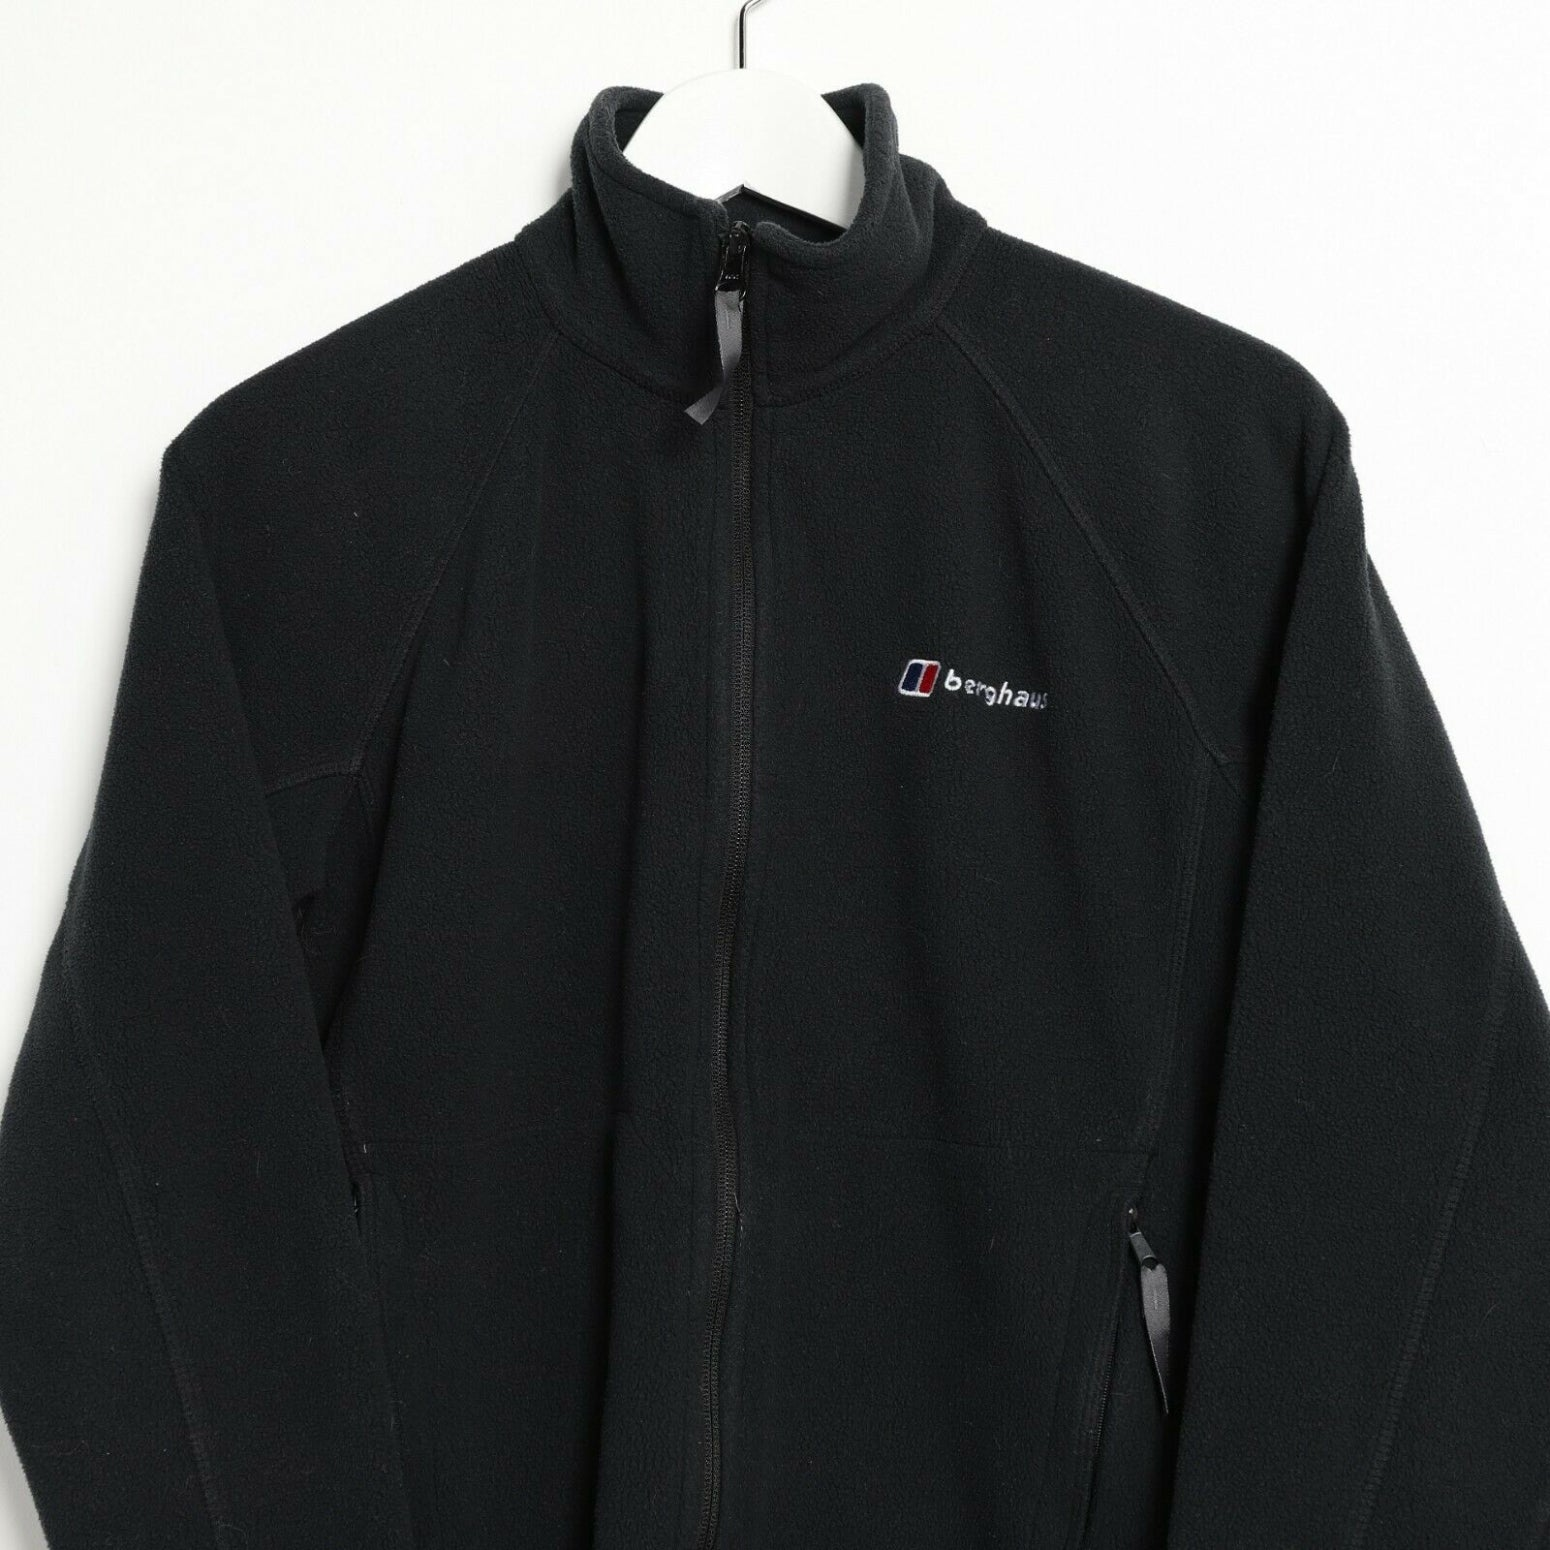 Vintage BERGHAUS Small Logo Zip Up Fleece Top Black | Small S